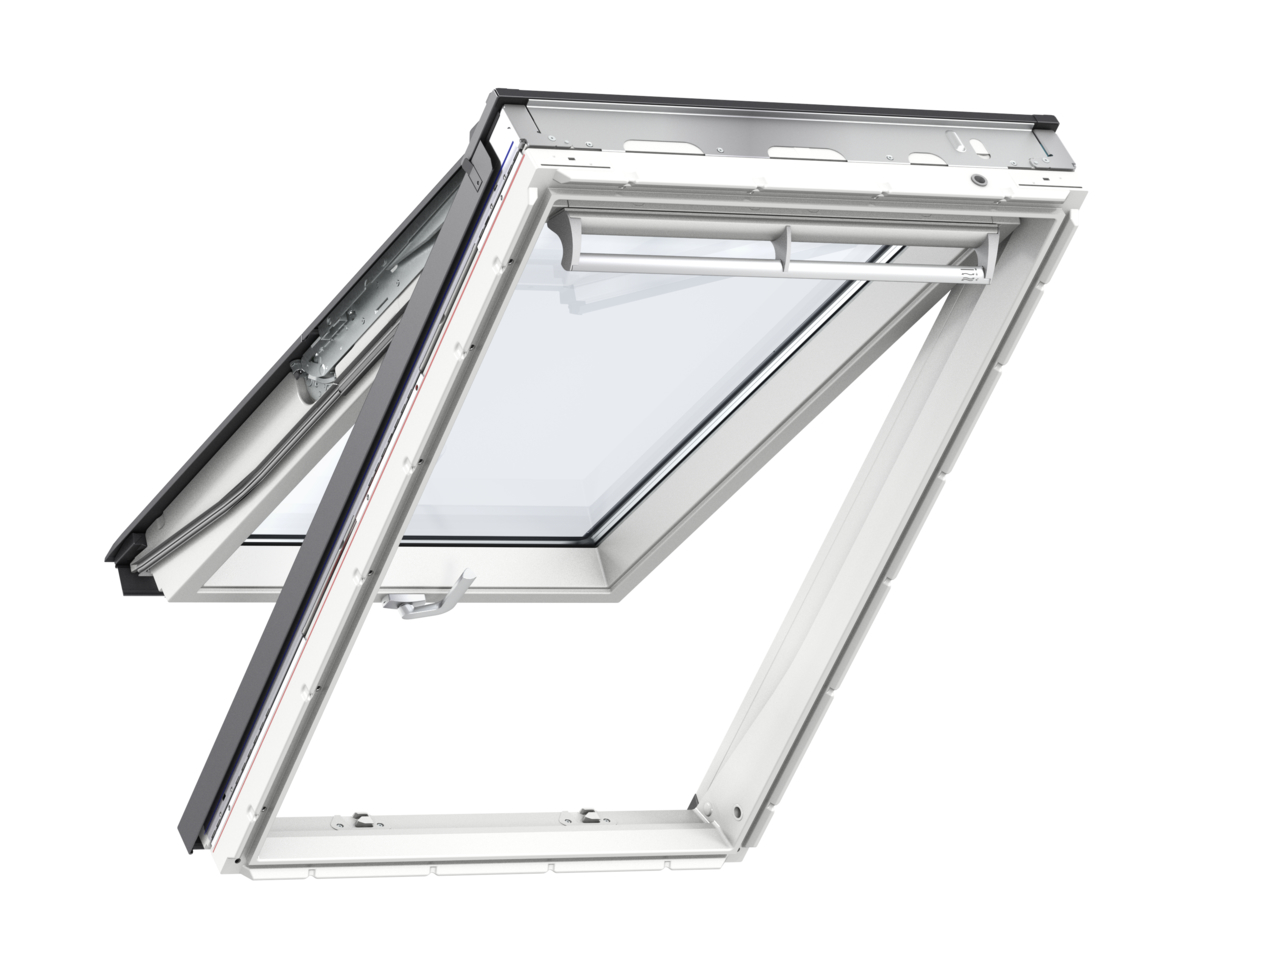 Velux GPU MK08 780 x 1400mm Top Hung 34Pane Roof Window - White Polyurethane